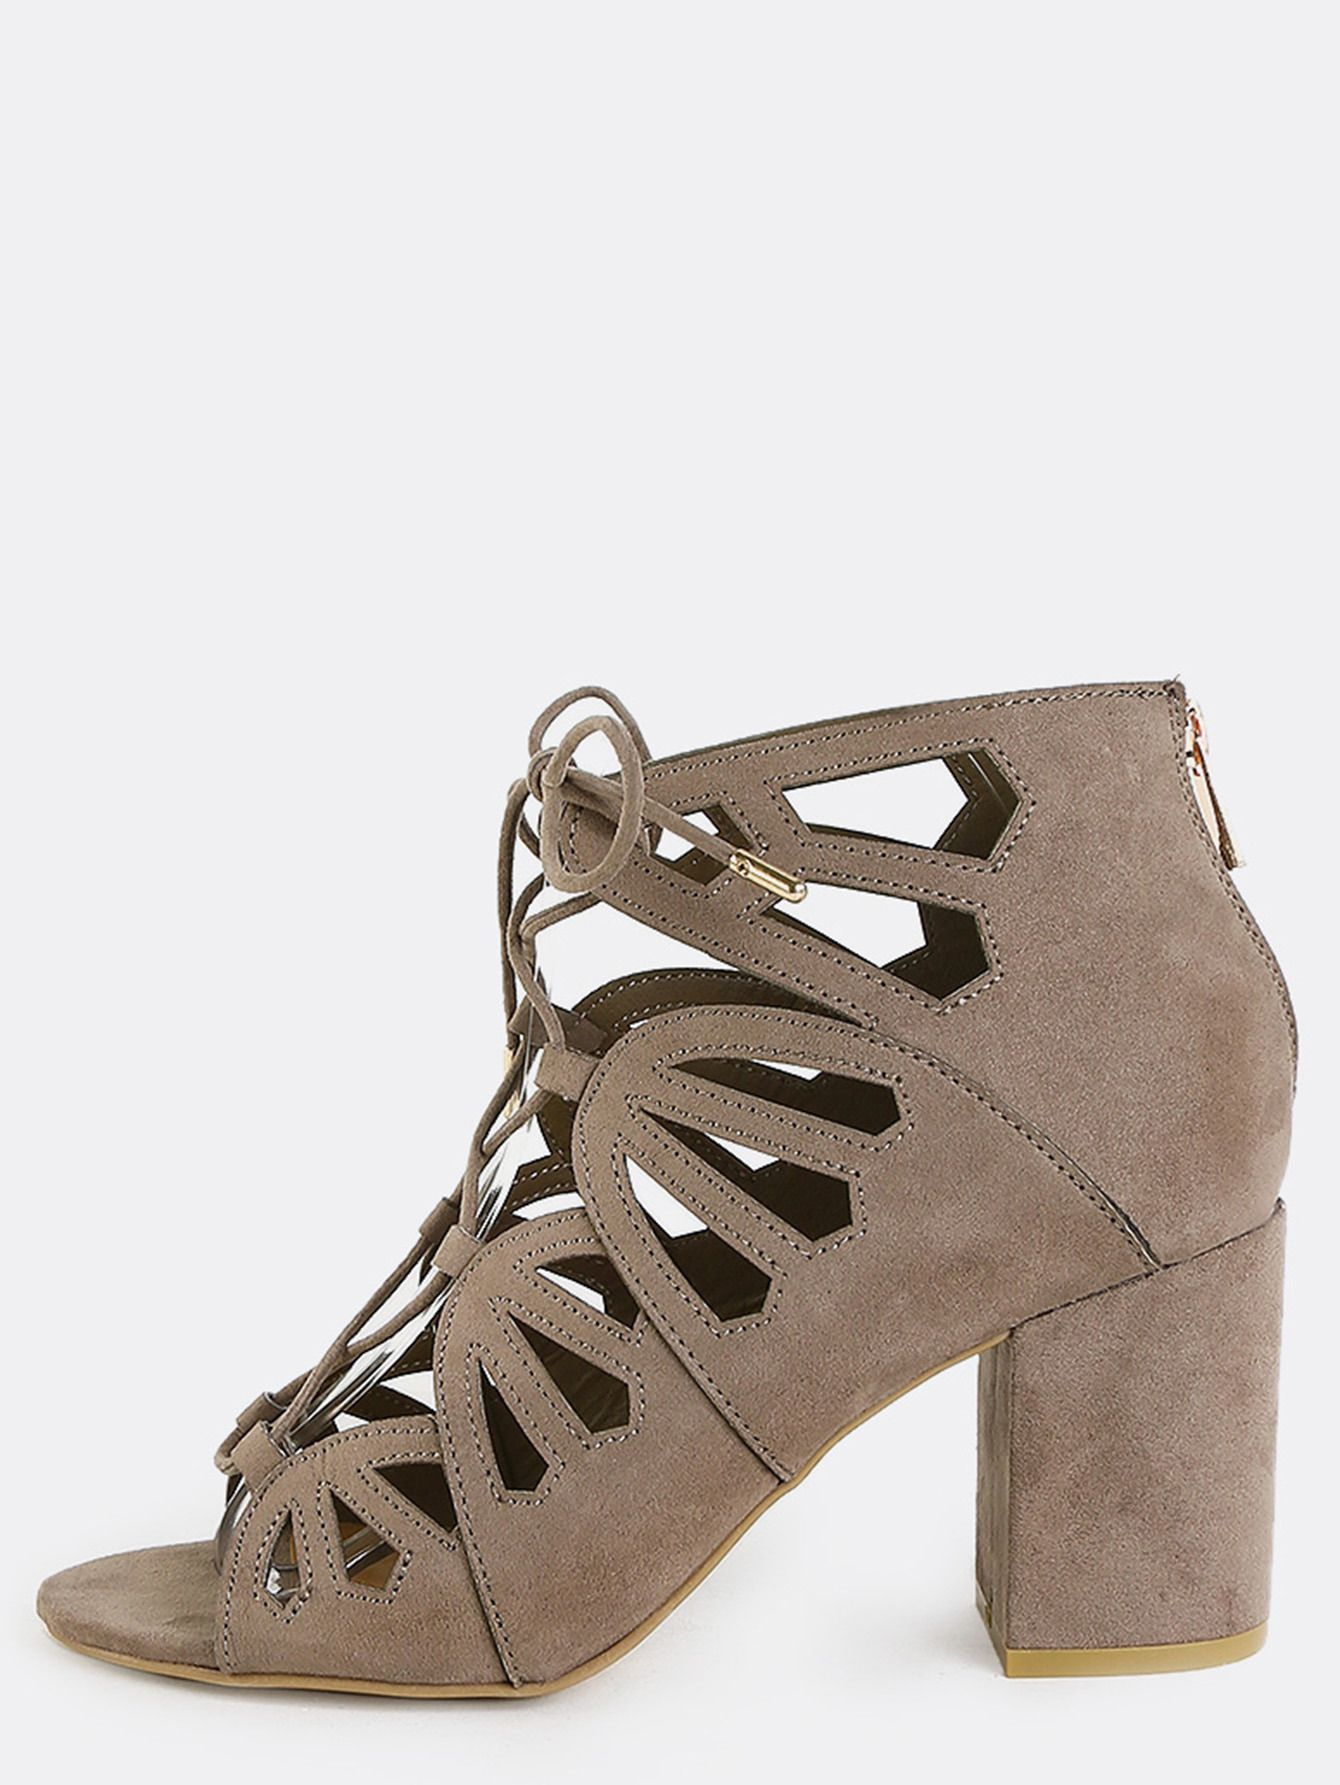 eff9810bde0c2 Make your outfit stand out with the Suede Cut Out Chunky Heels. Features an  open toe, faux suede upper, cut out accents, back zipper, and a lace up  design.